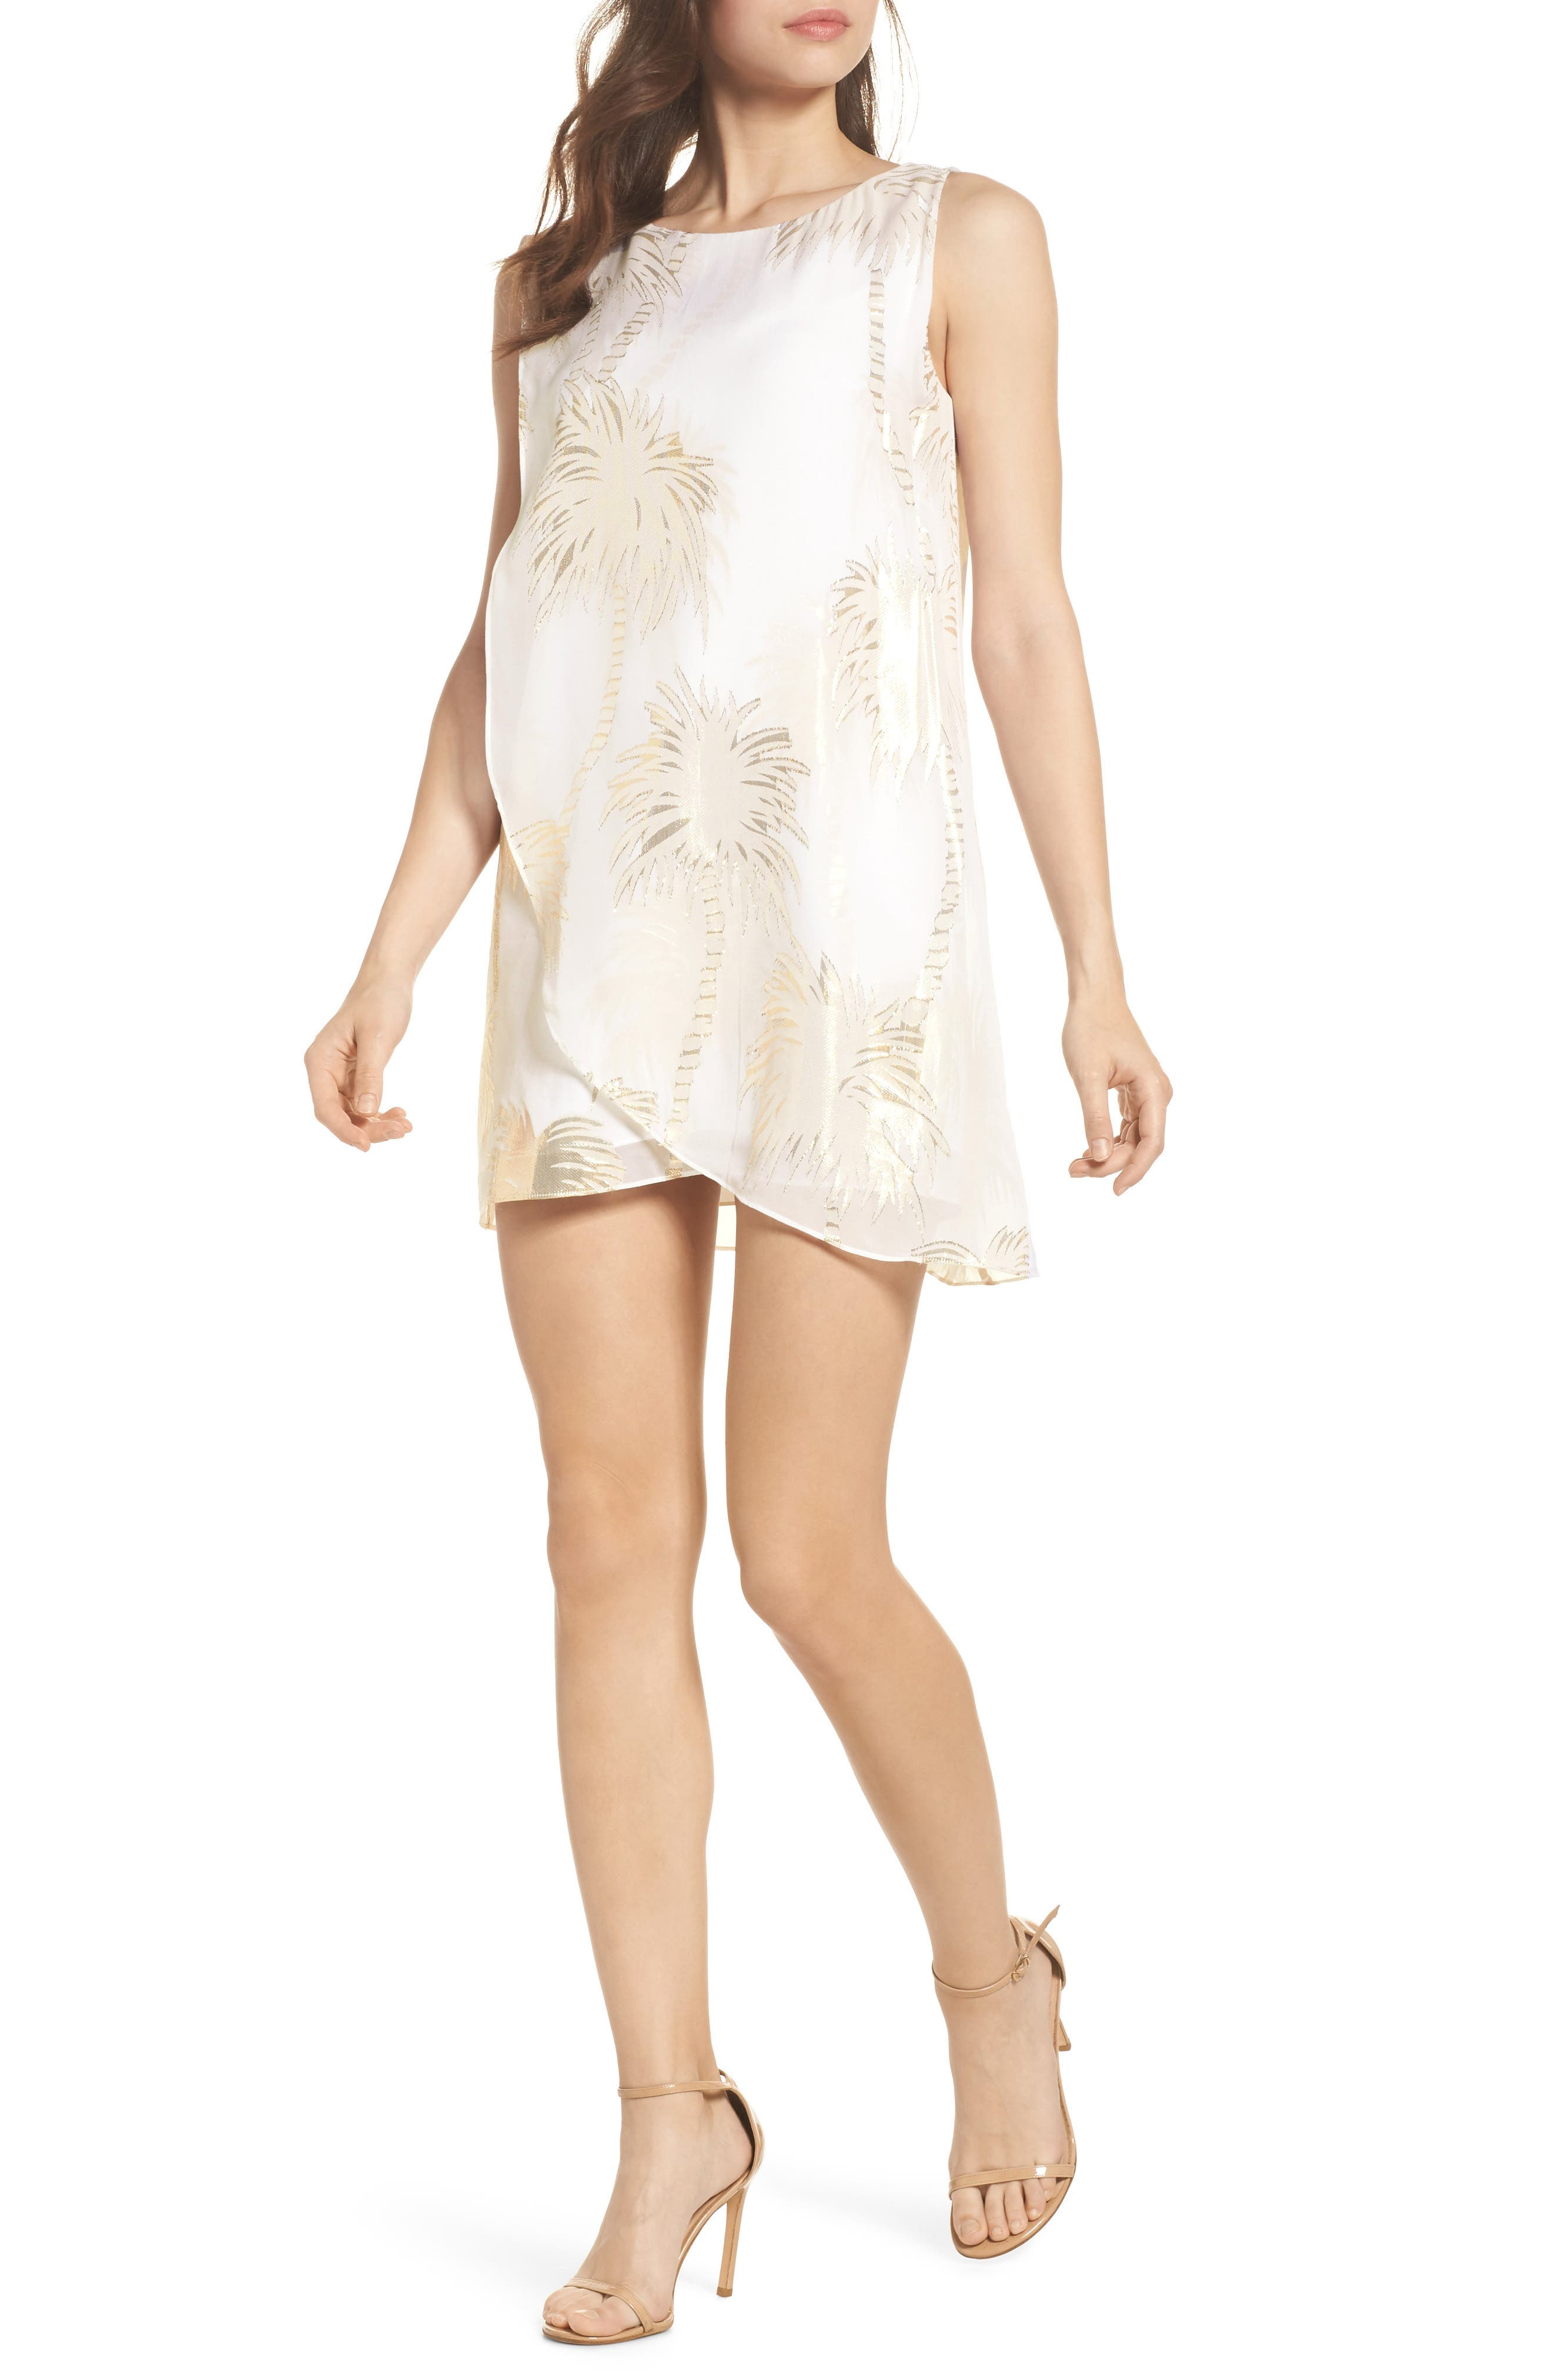 Calissa Silk Dress,                         Main,                         color, Resort White Palm Tree Clip